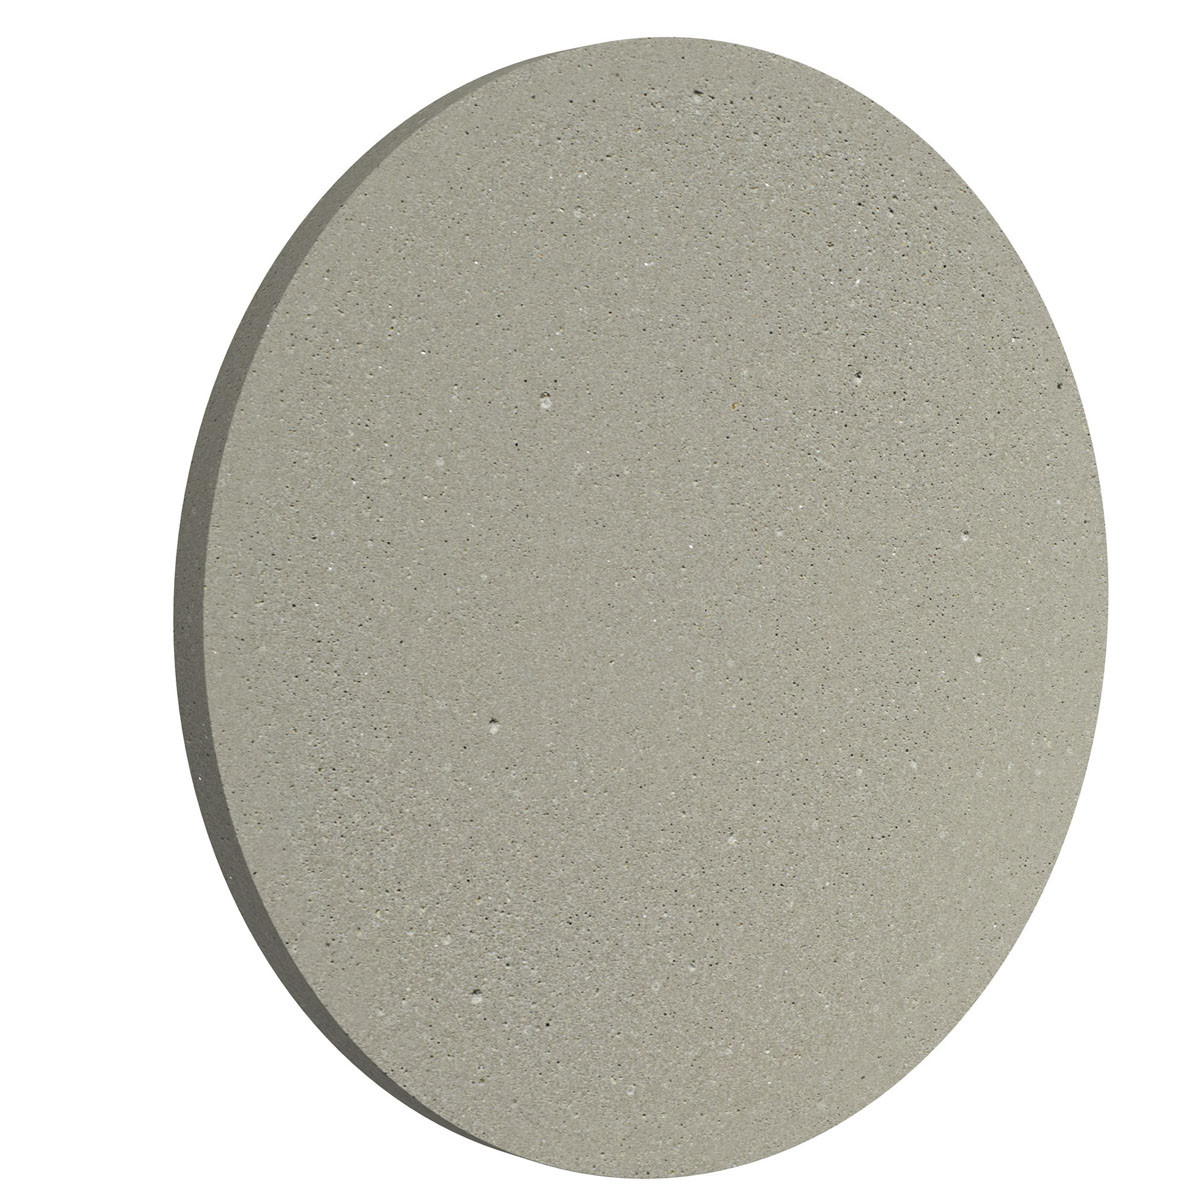 Flos Camouflage 240 Outdoor Wall/Ceiling Light